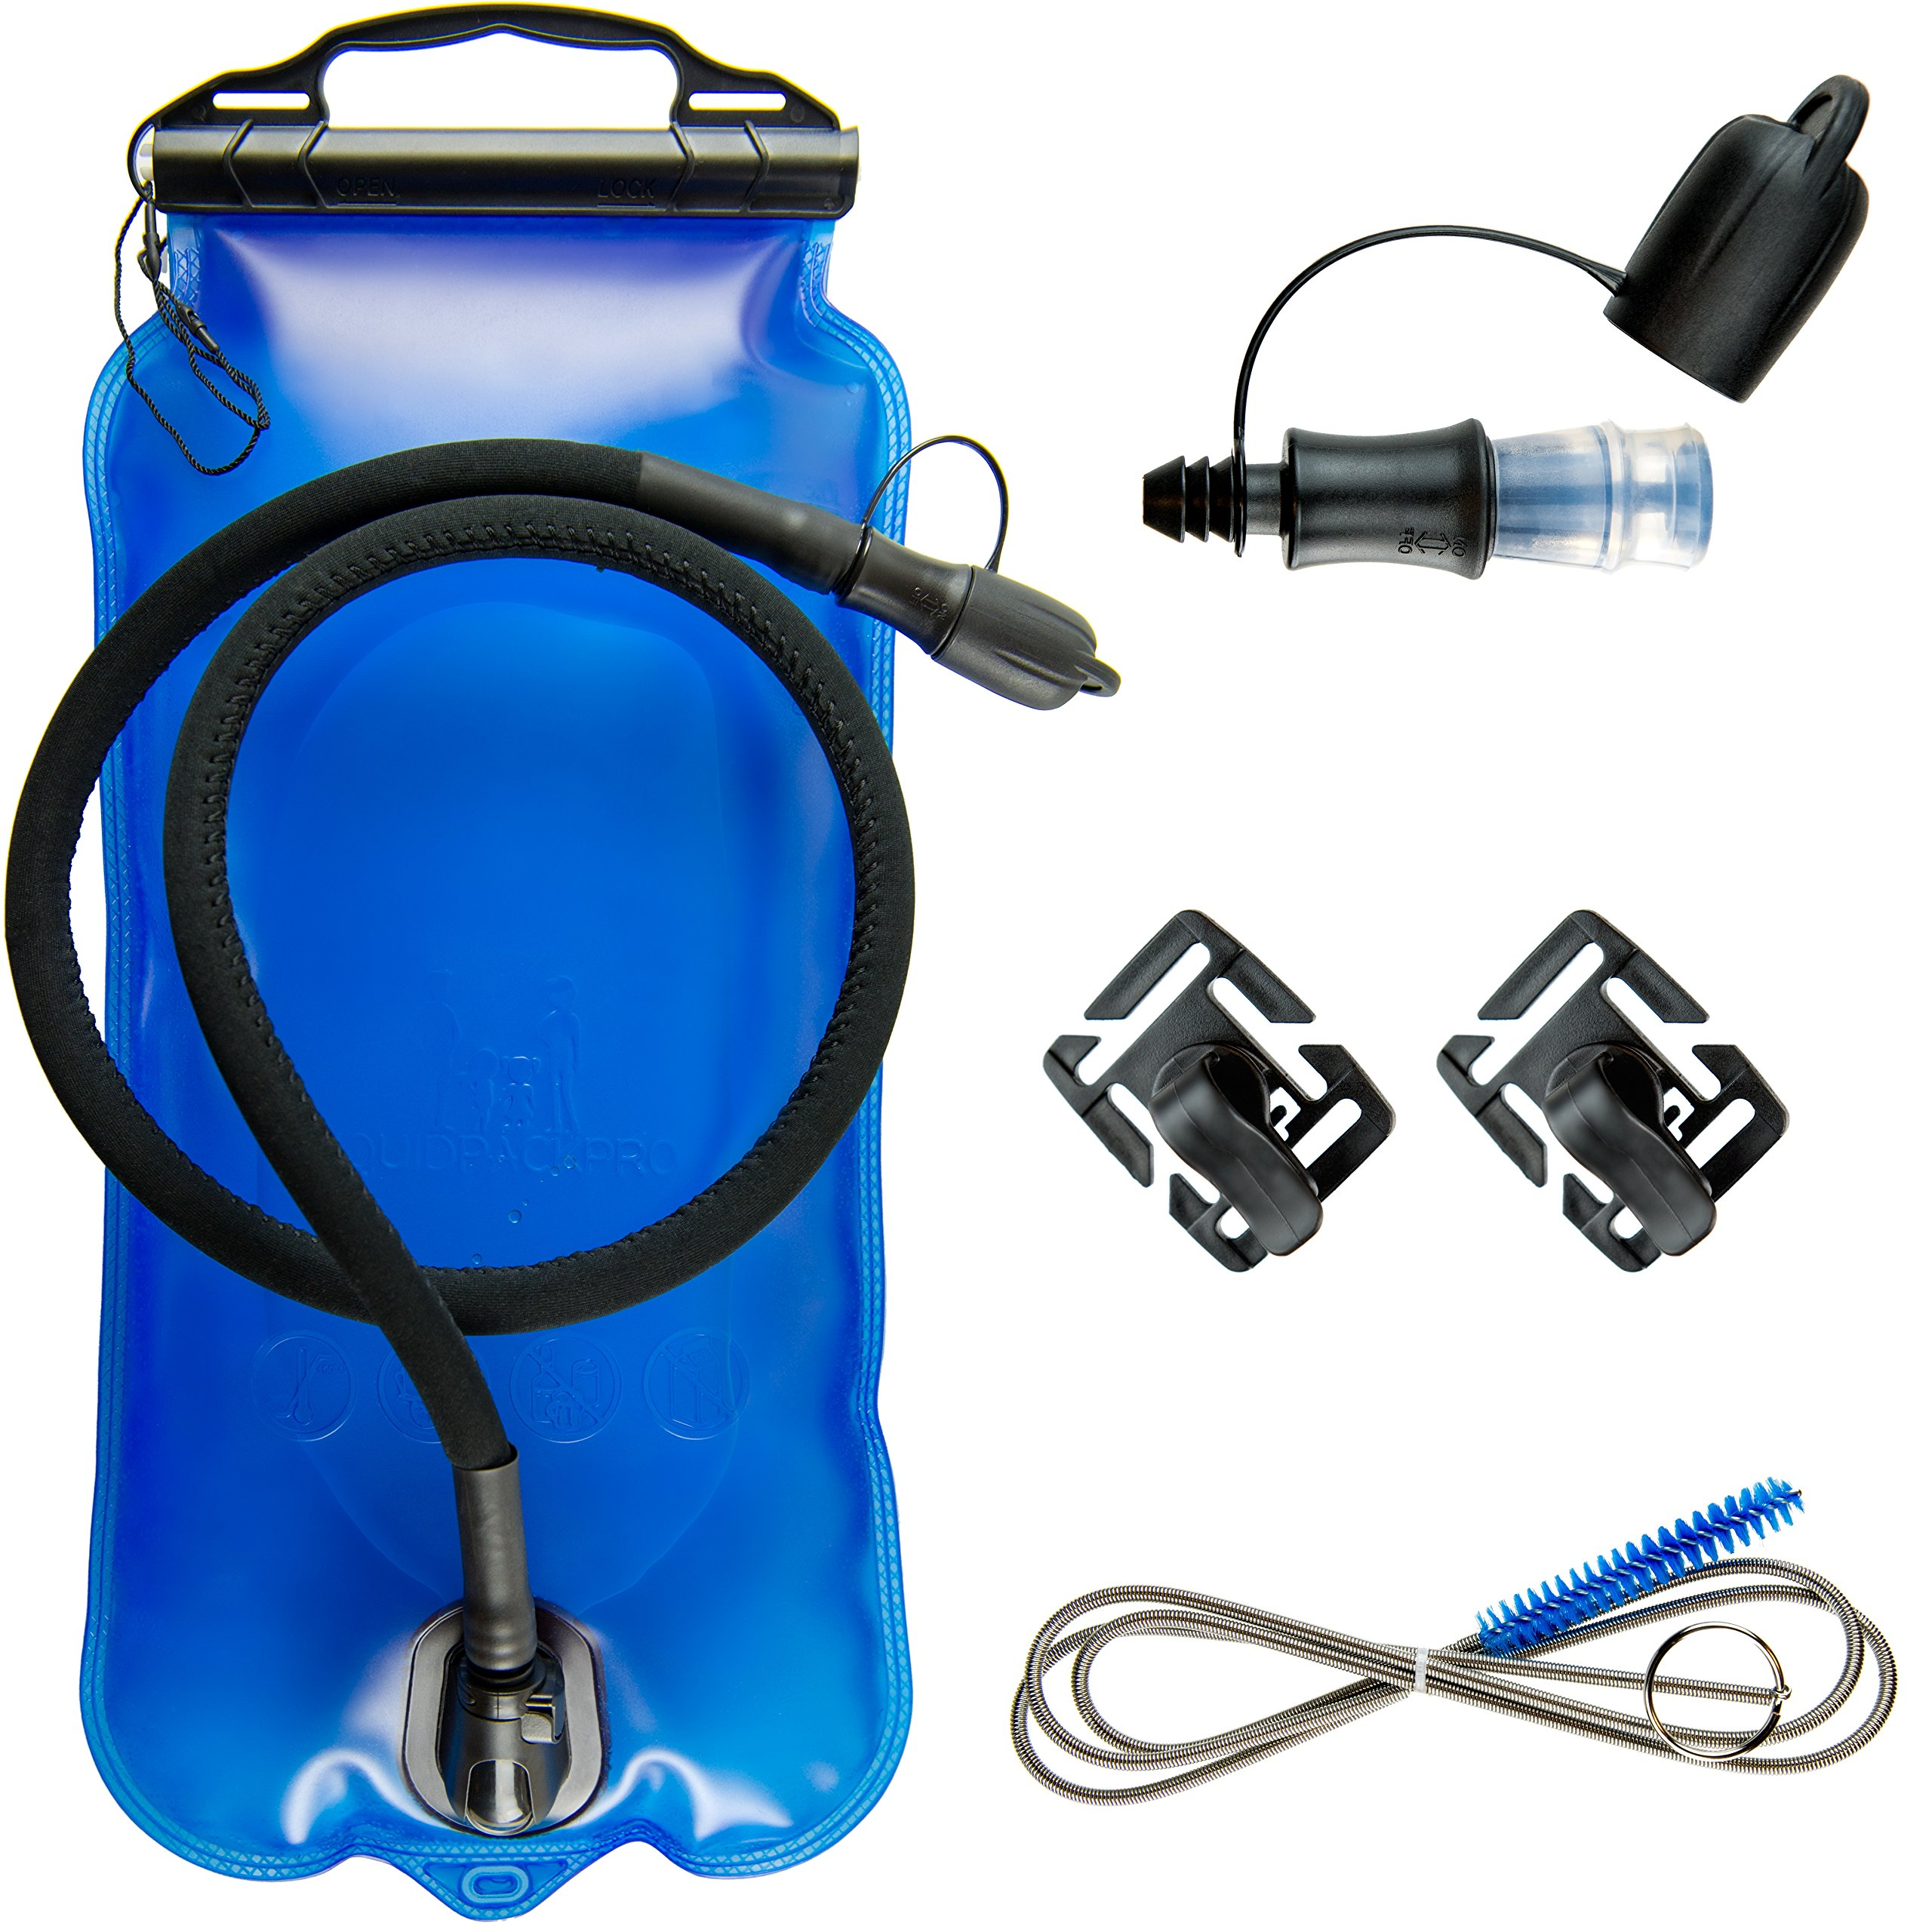 Large Opening Water Bladder Bag with Quick Release Insulated Tube MATT SAGA Hydration Bladder Blue. BPA Free Hydration Pack Replacement 1.5L 2L 3L Leak Proof Water Reservoir for Outdoor Sports